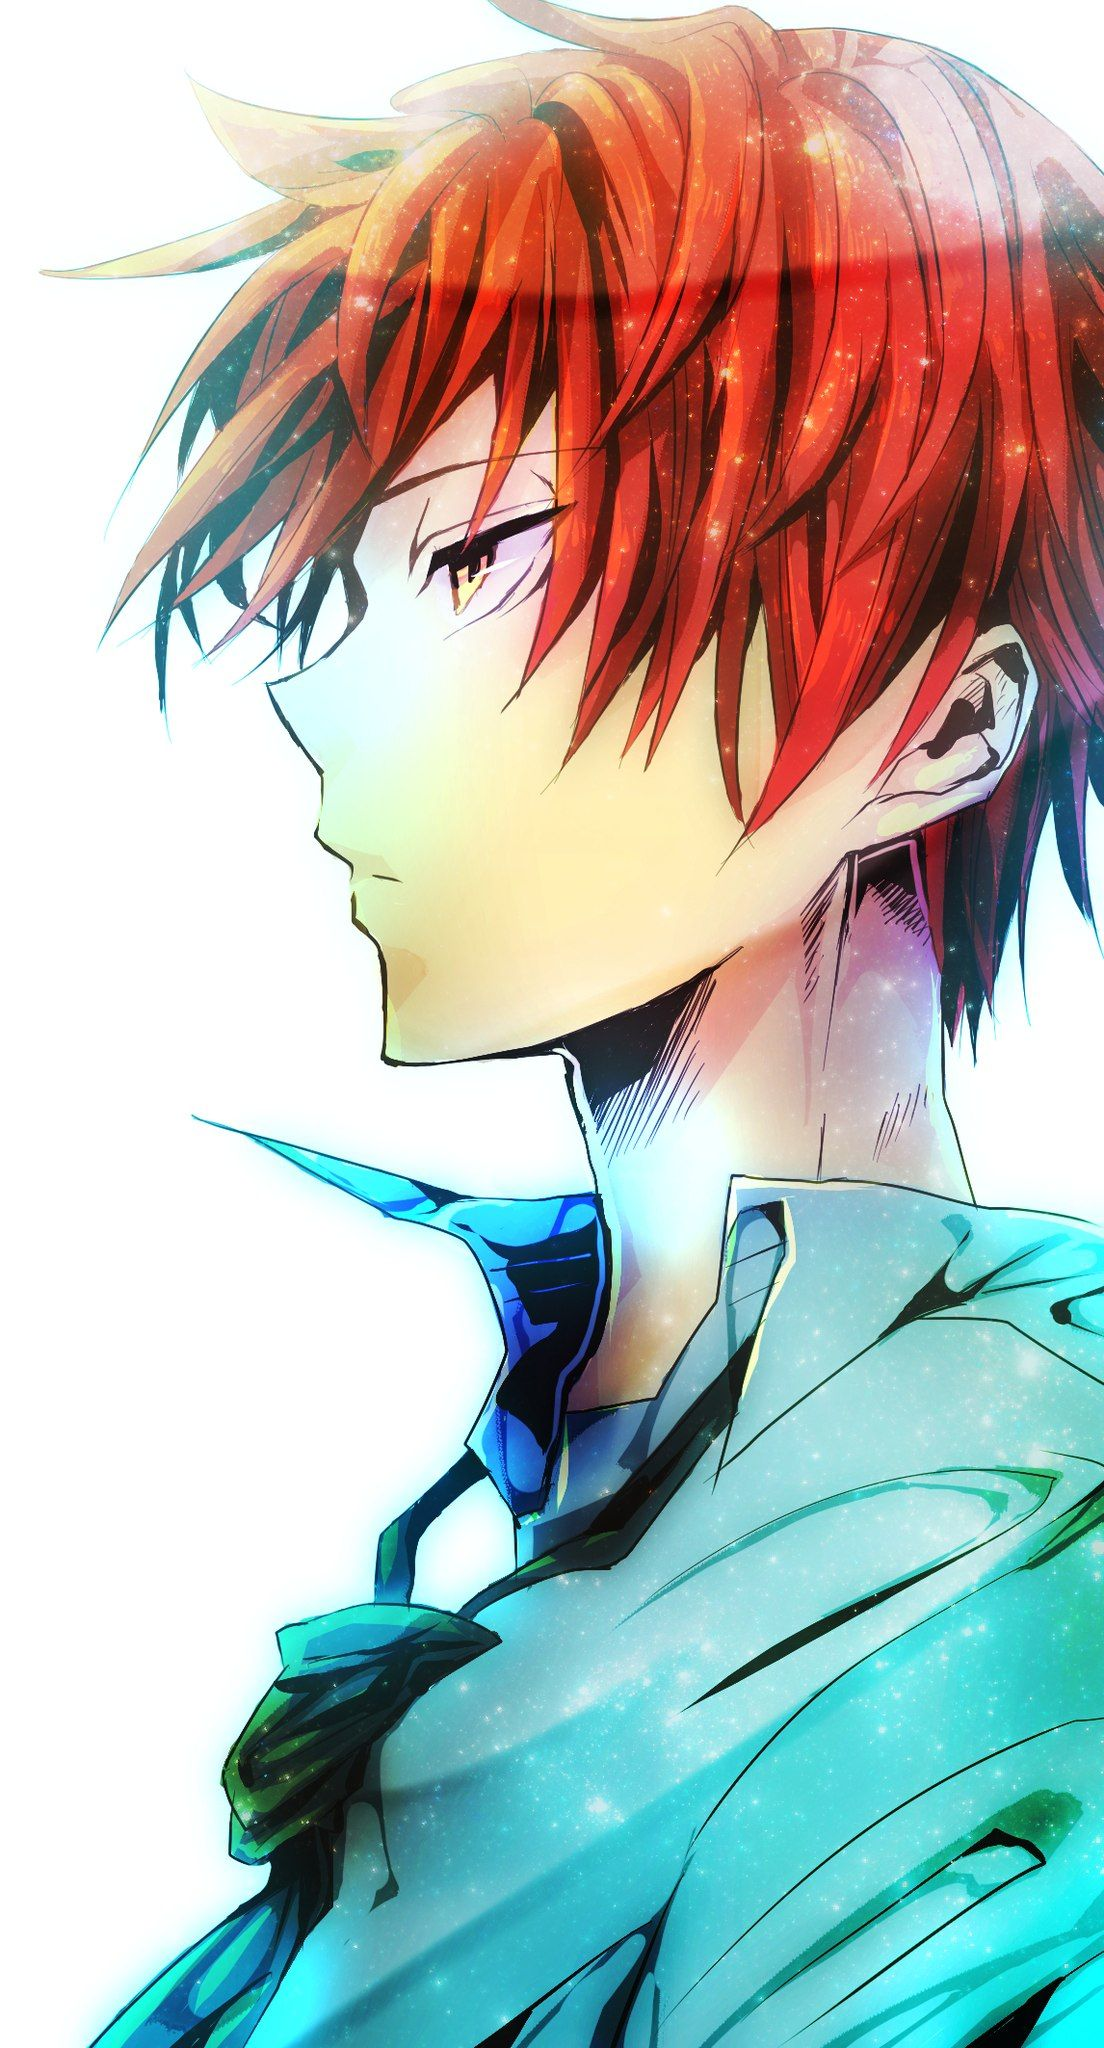 Akashi looked like haruka from free though just with red hair